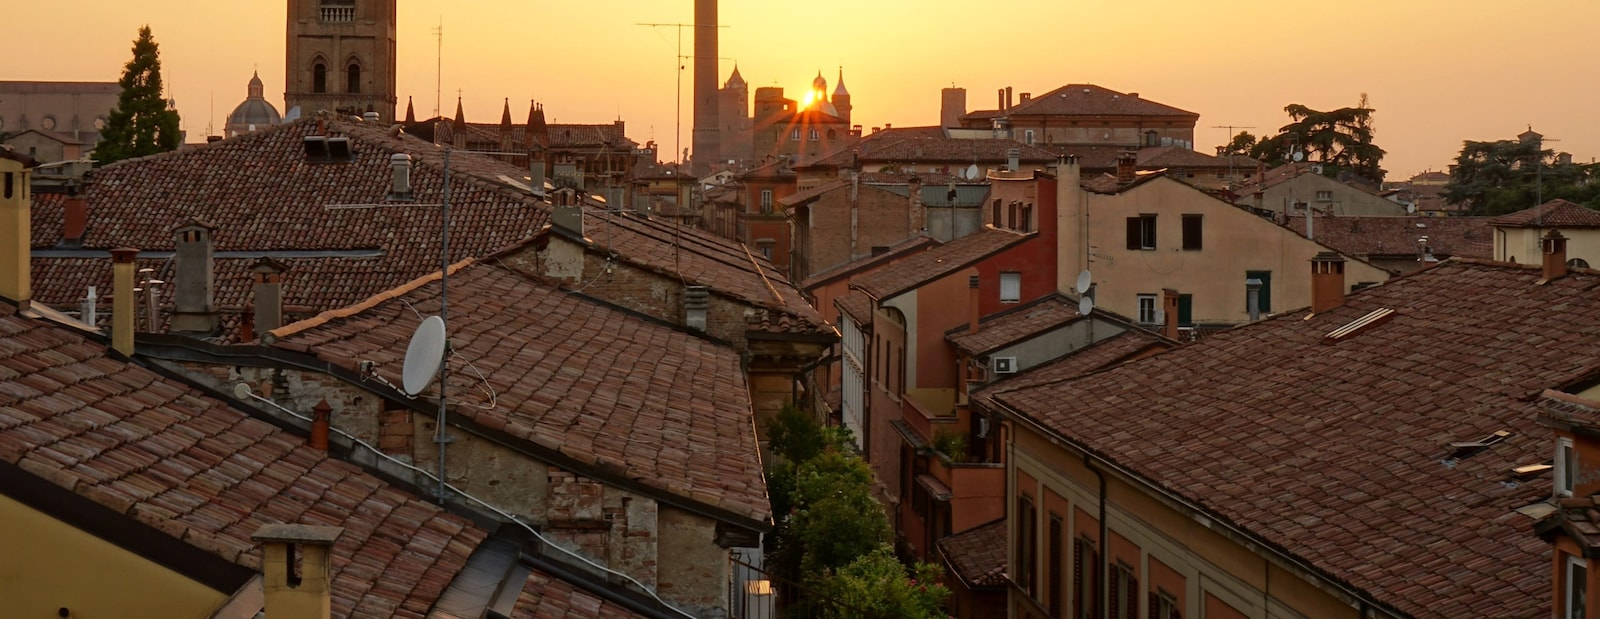 Vacation rentals in Metropolitan City of Bologna